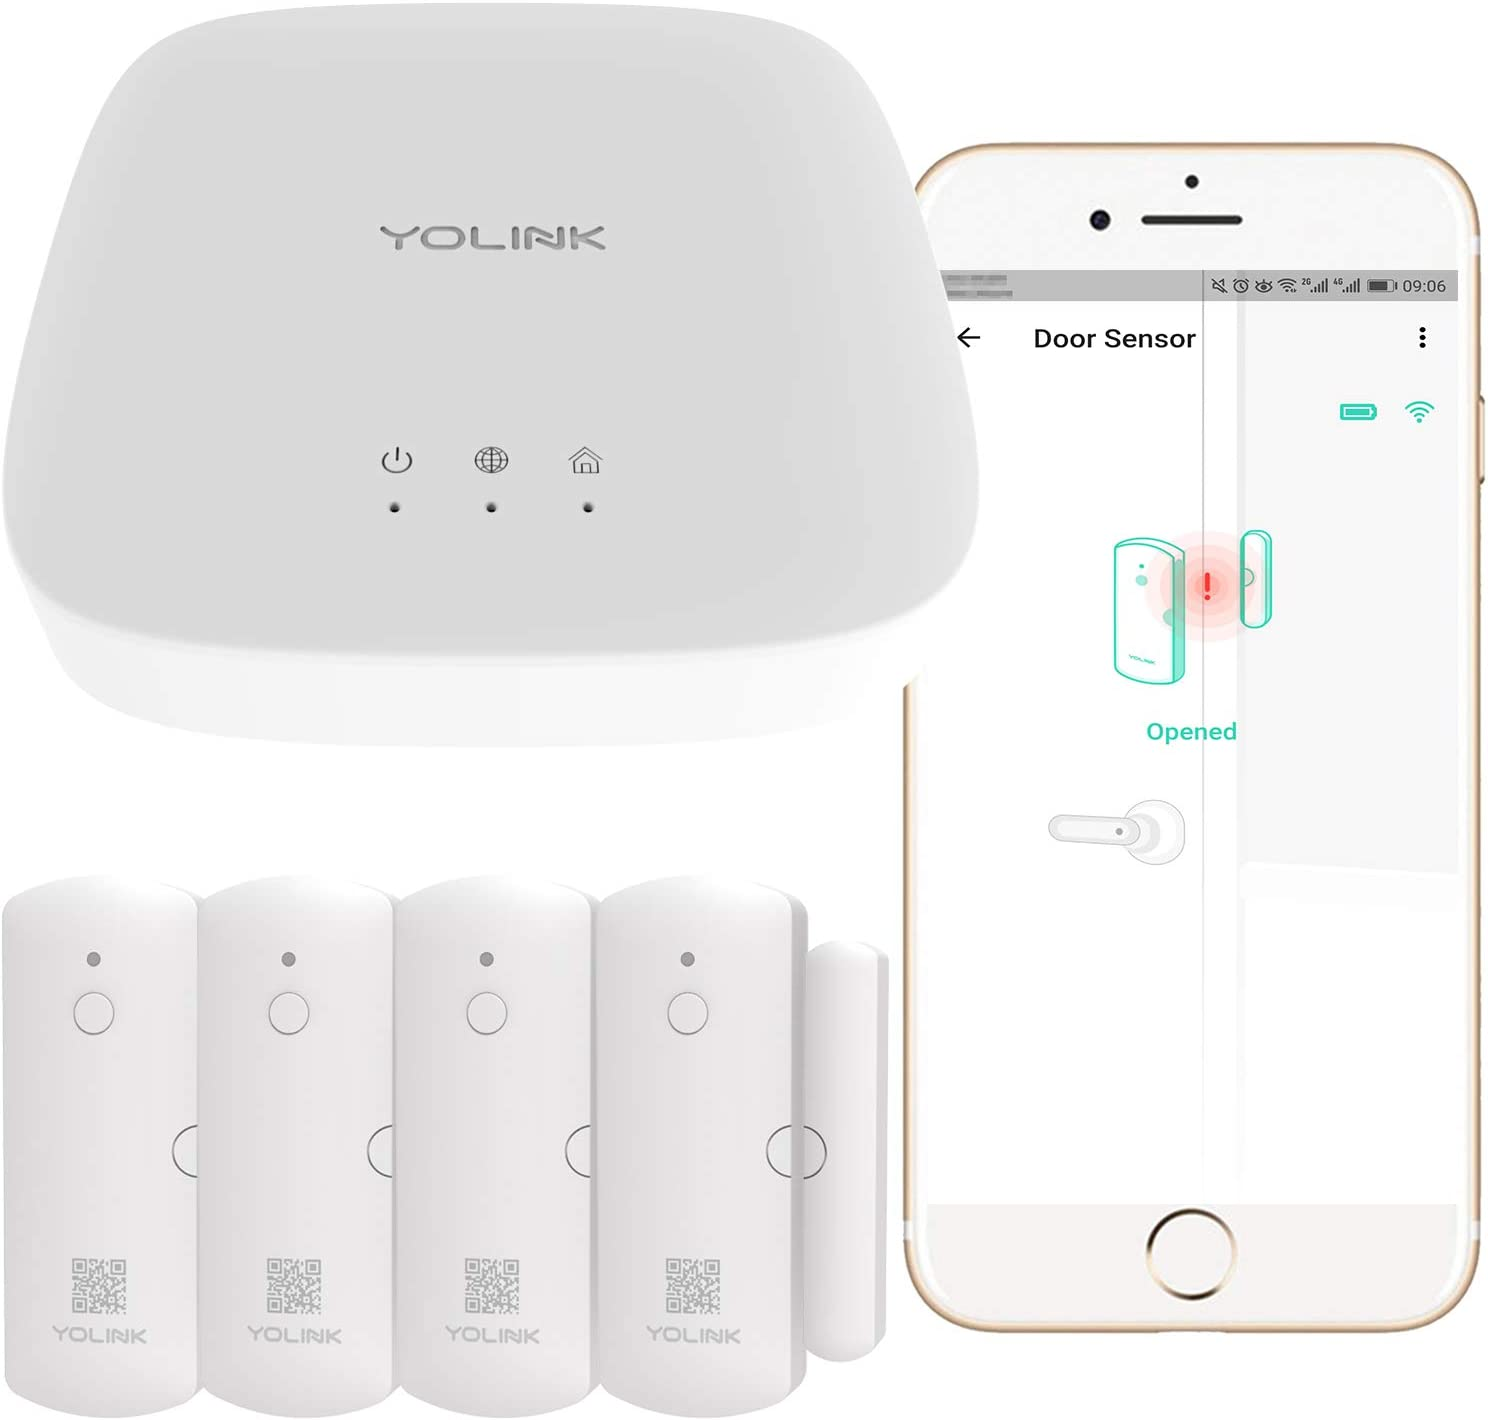 Smart Door Sensors, 1/4 Mile World's Longest Range Wireless Window Door Sensor Work with Alexa IFTTT, Smartphone Monitor APP Alerts Open Reminder Smart Home Security Kit, 4 Packs, YoLink Hub Included